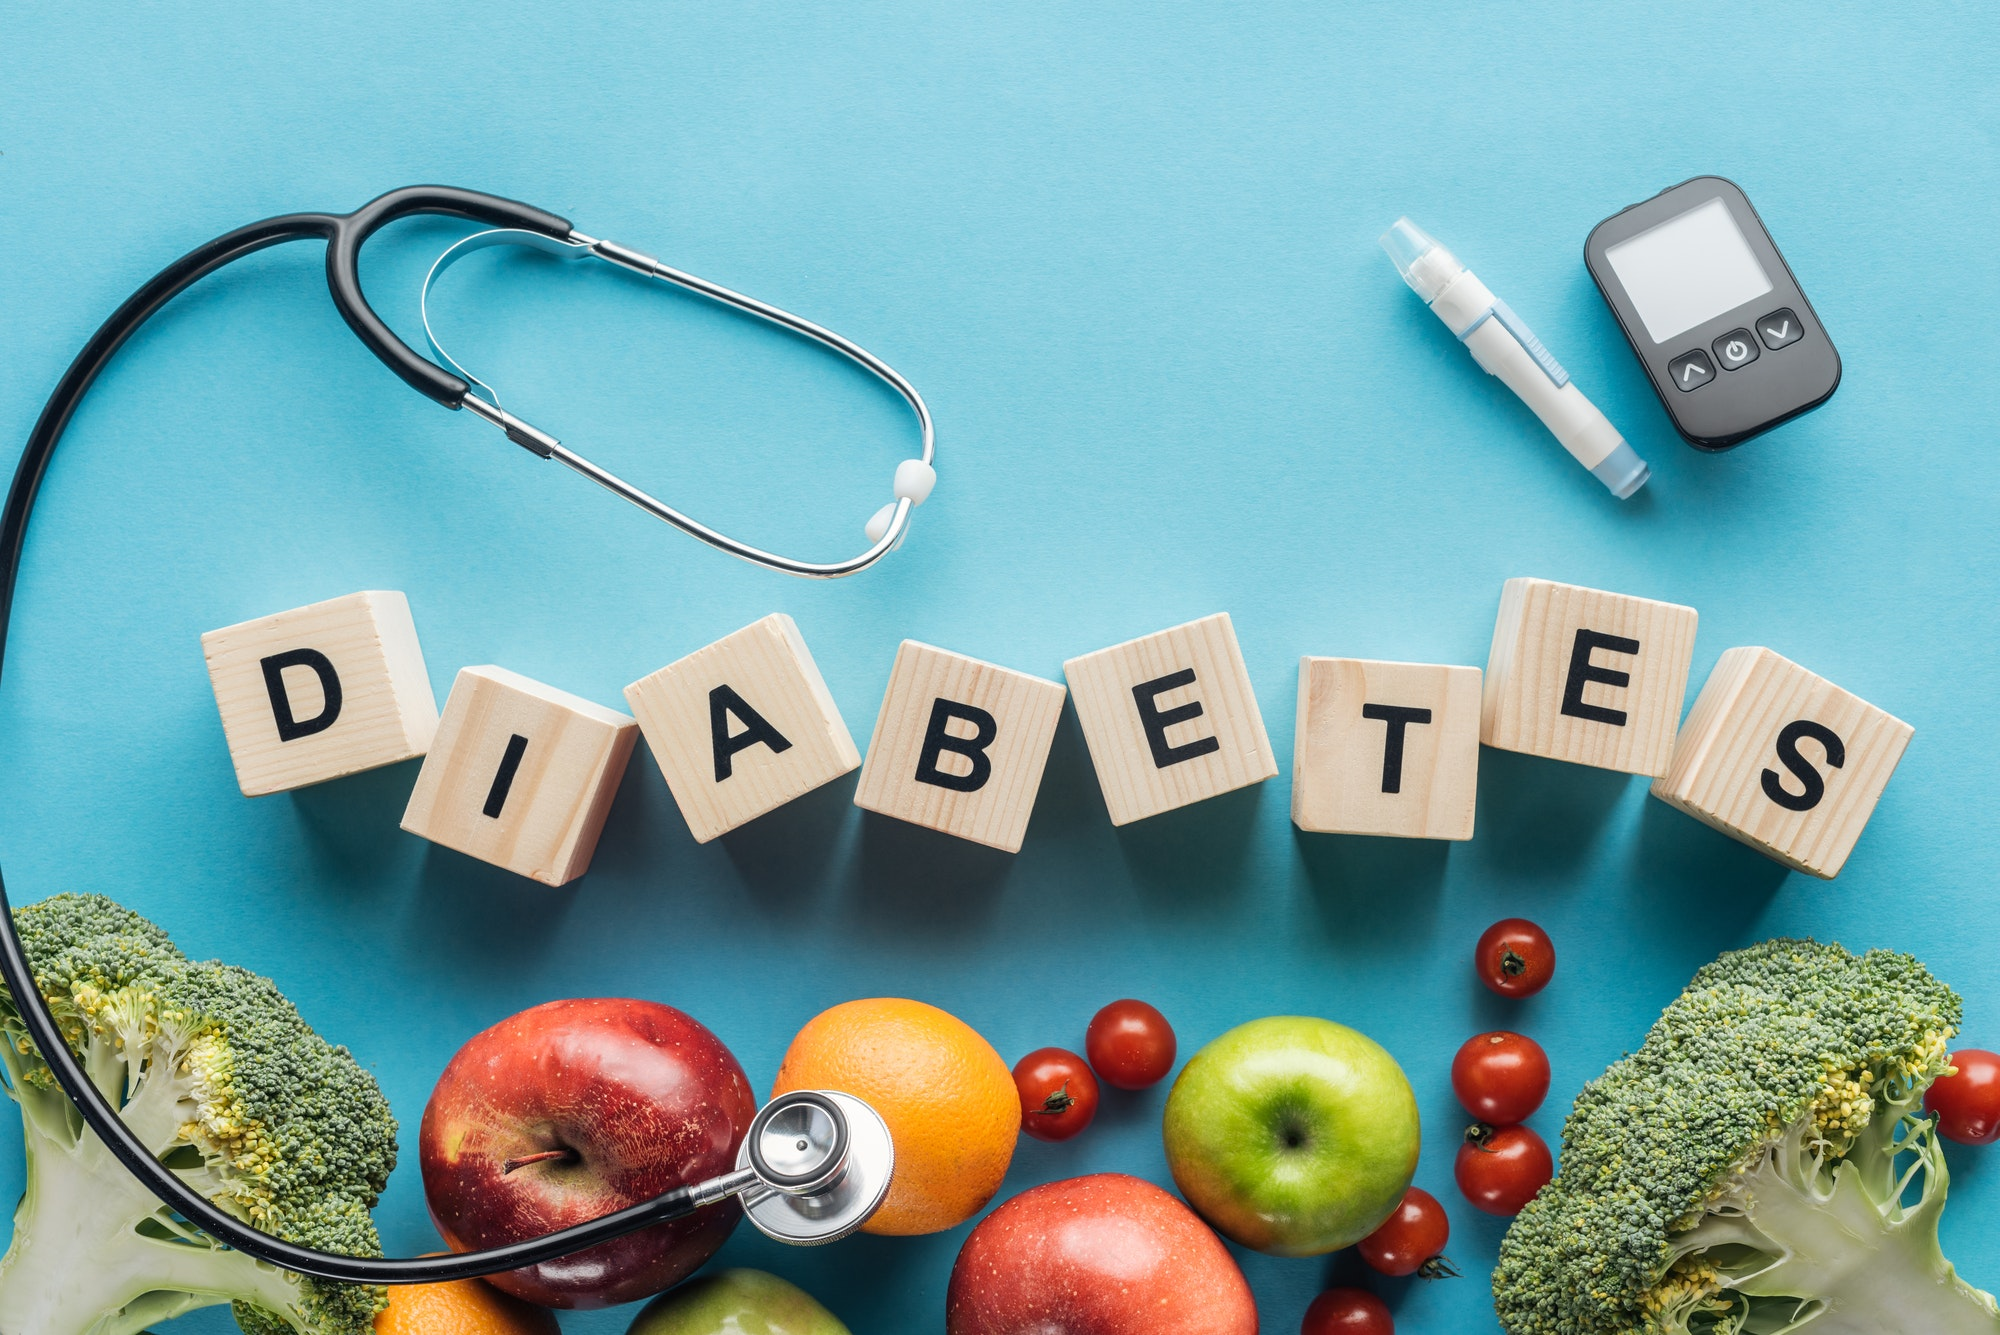 diabetes lettering made of wooden cubes with medical equipment and fruits on blue background